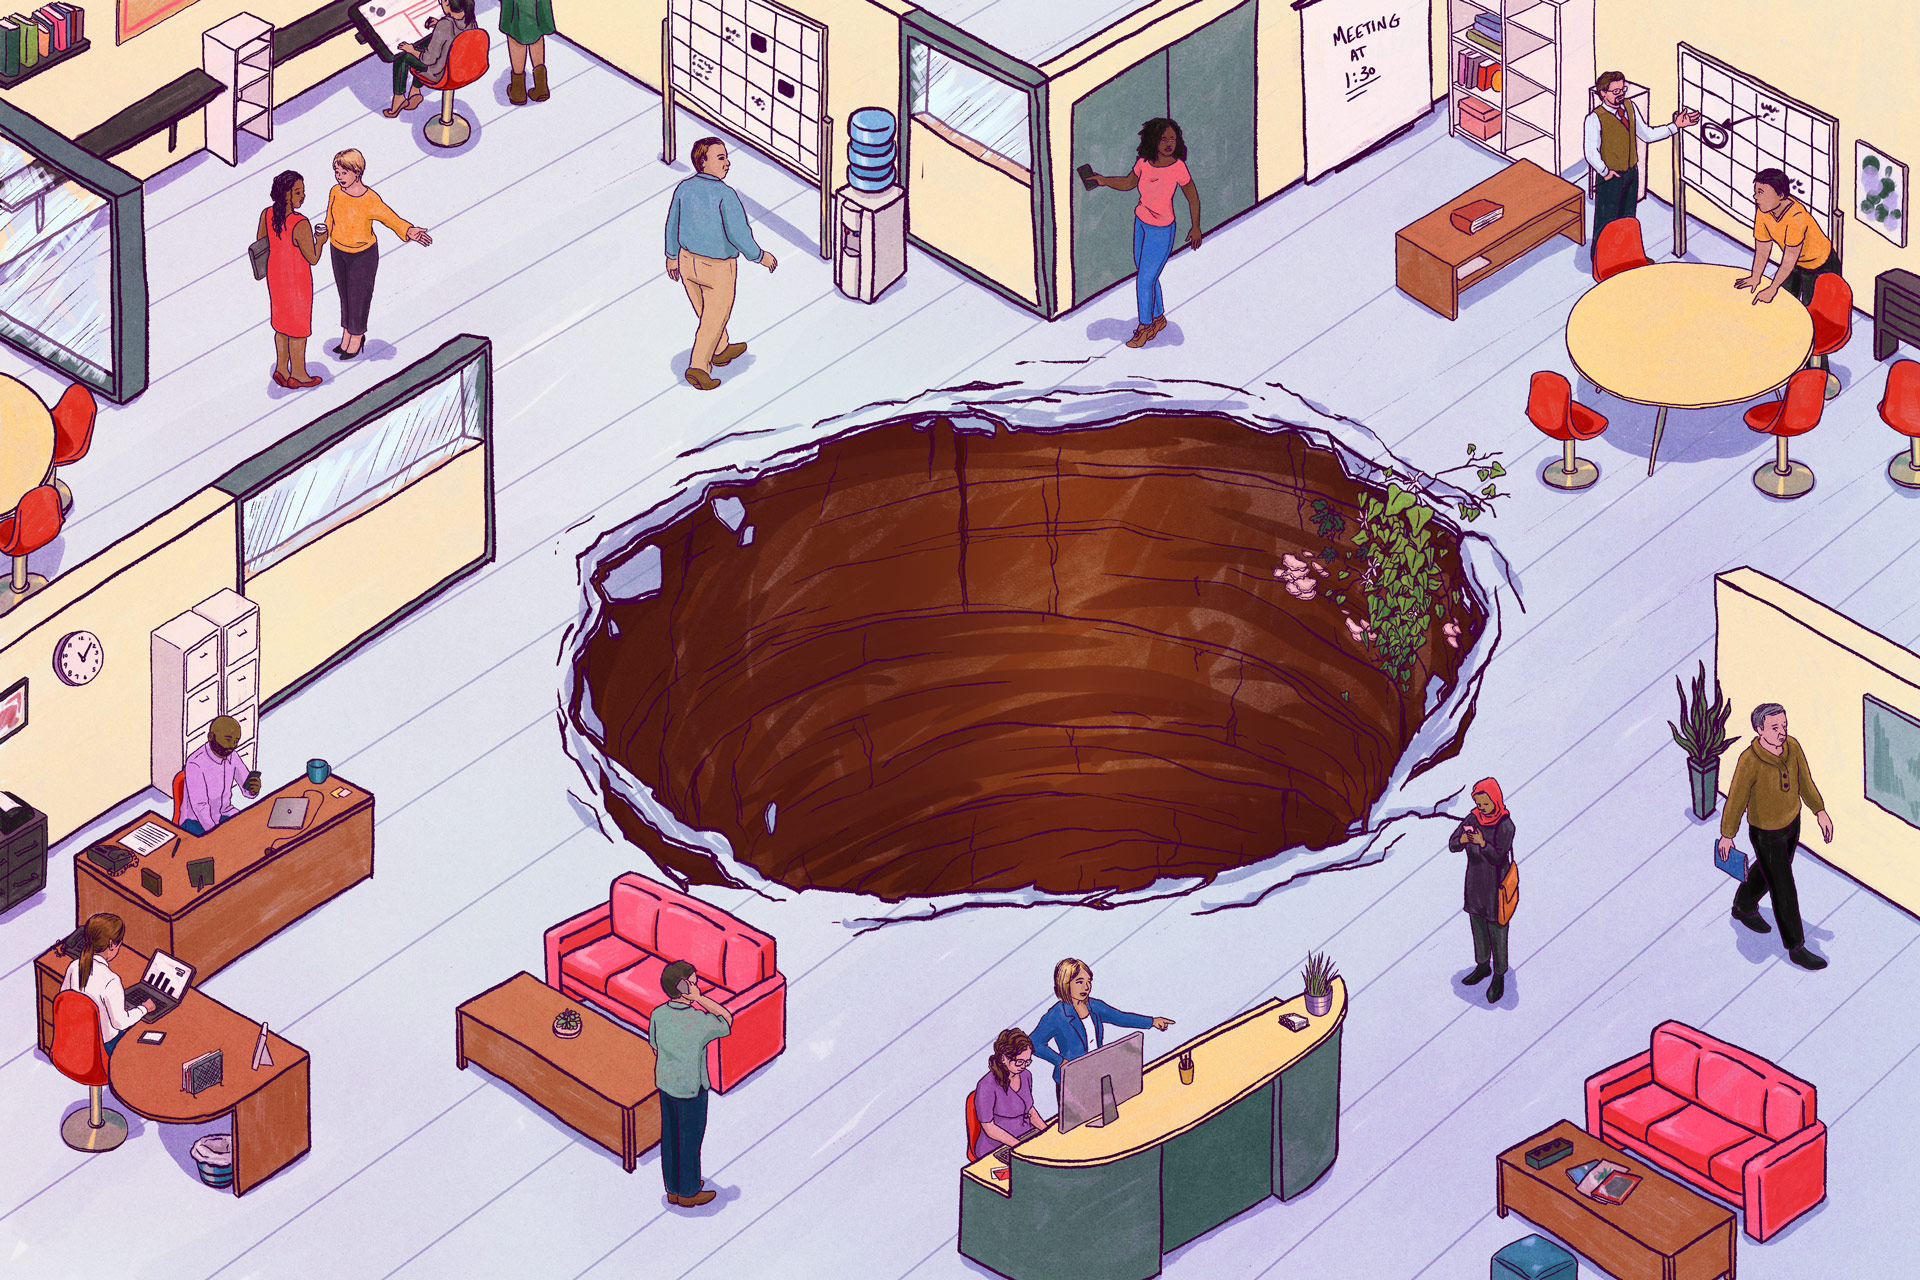 Sinkhole Office